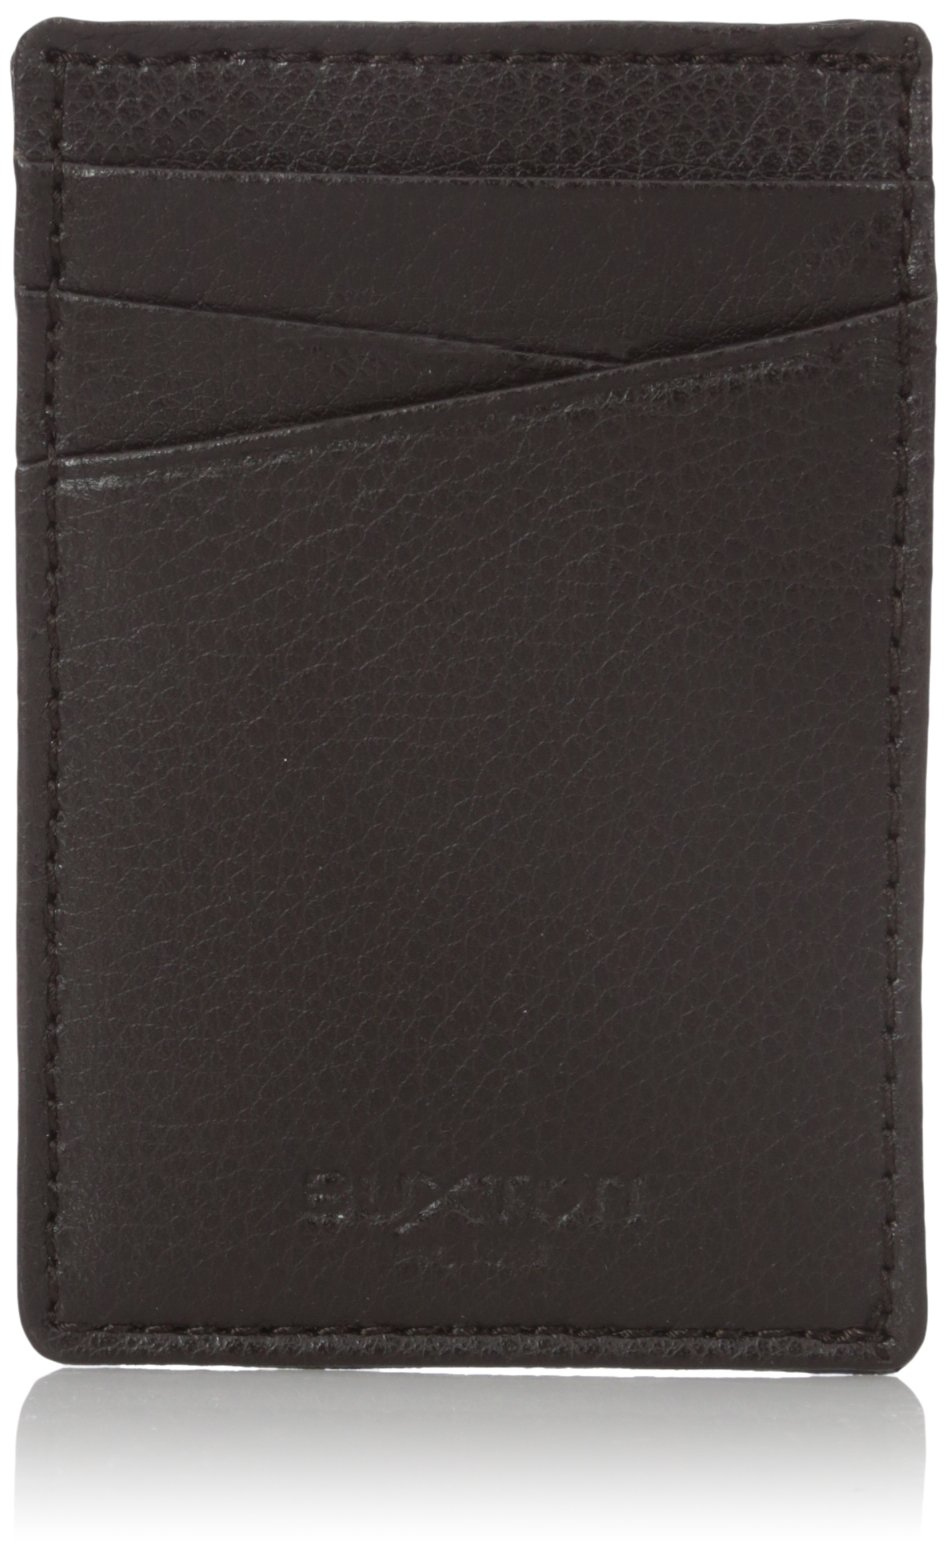 Buxton Men's Addison RFID Blocking Leather Front Pocket Money Clip Wallet, Brown, One Size